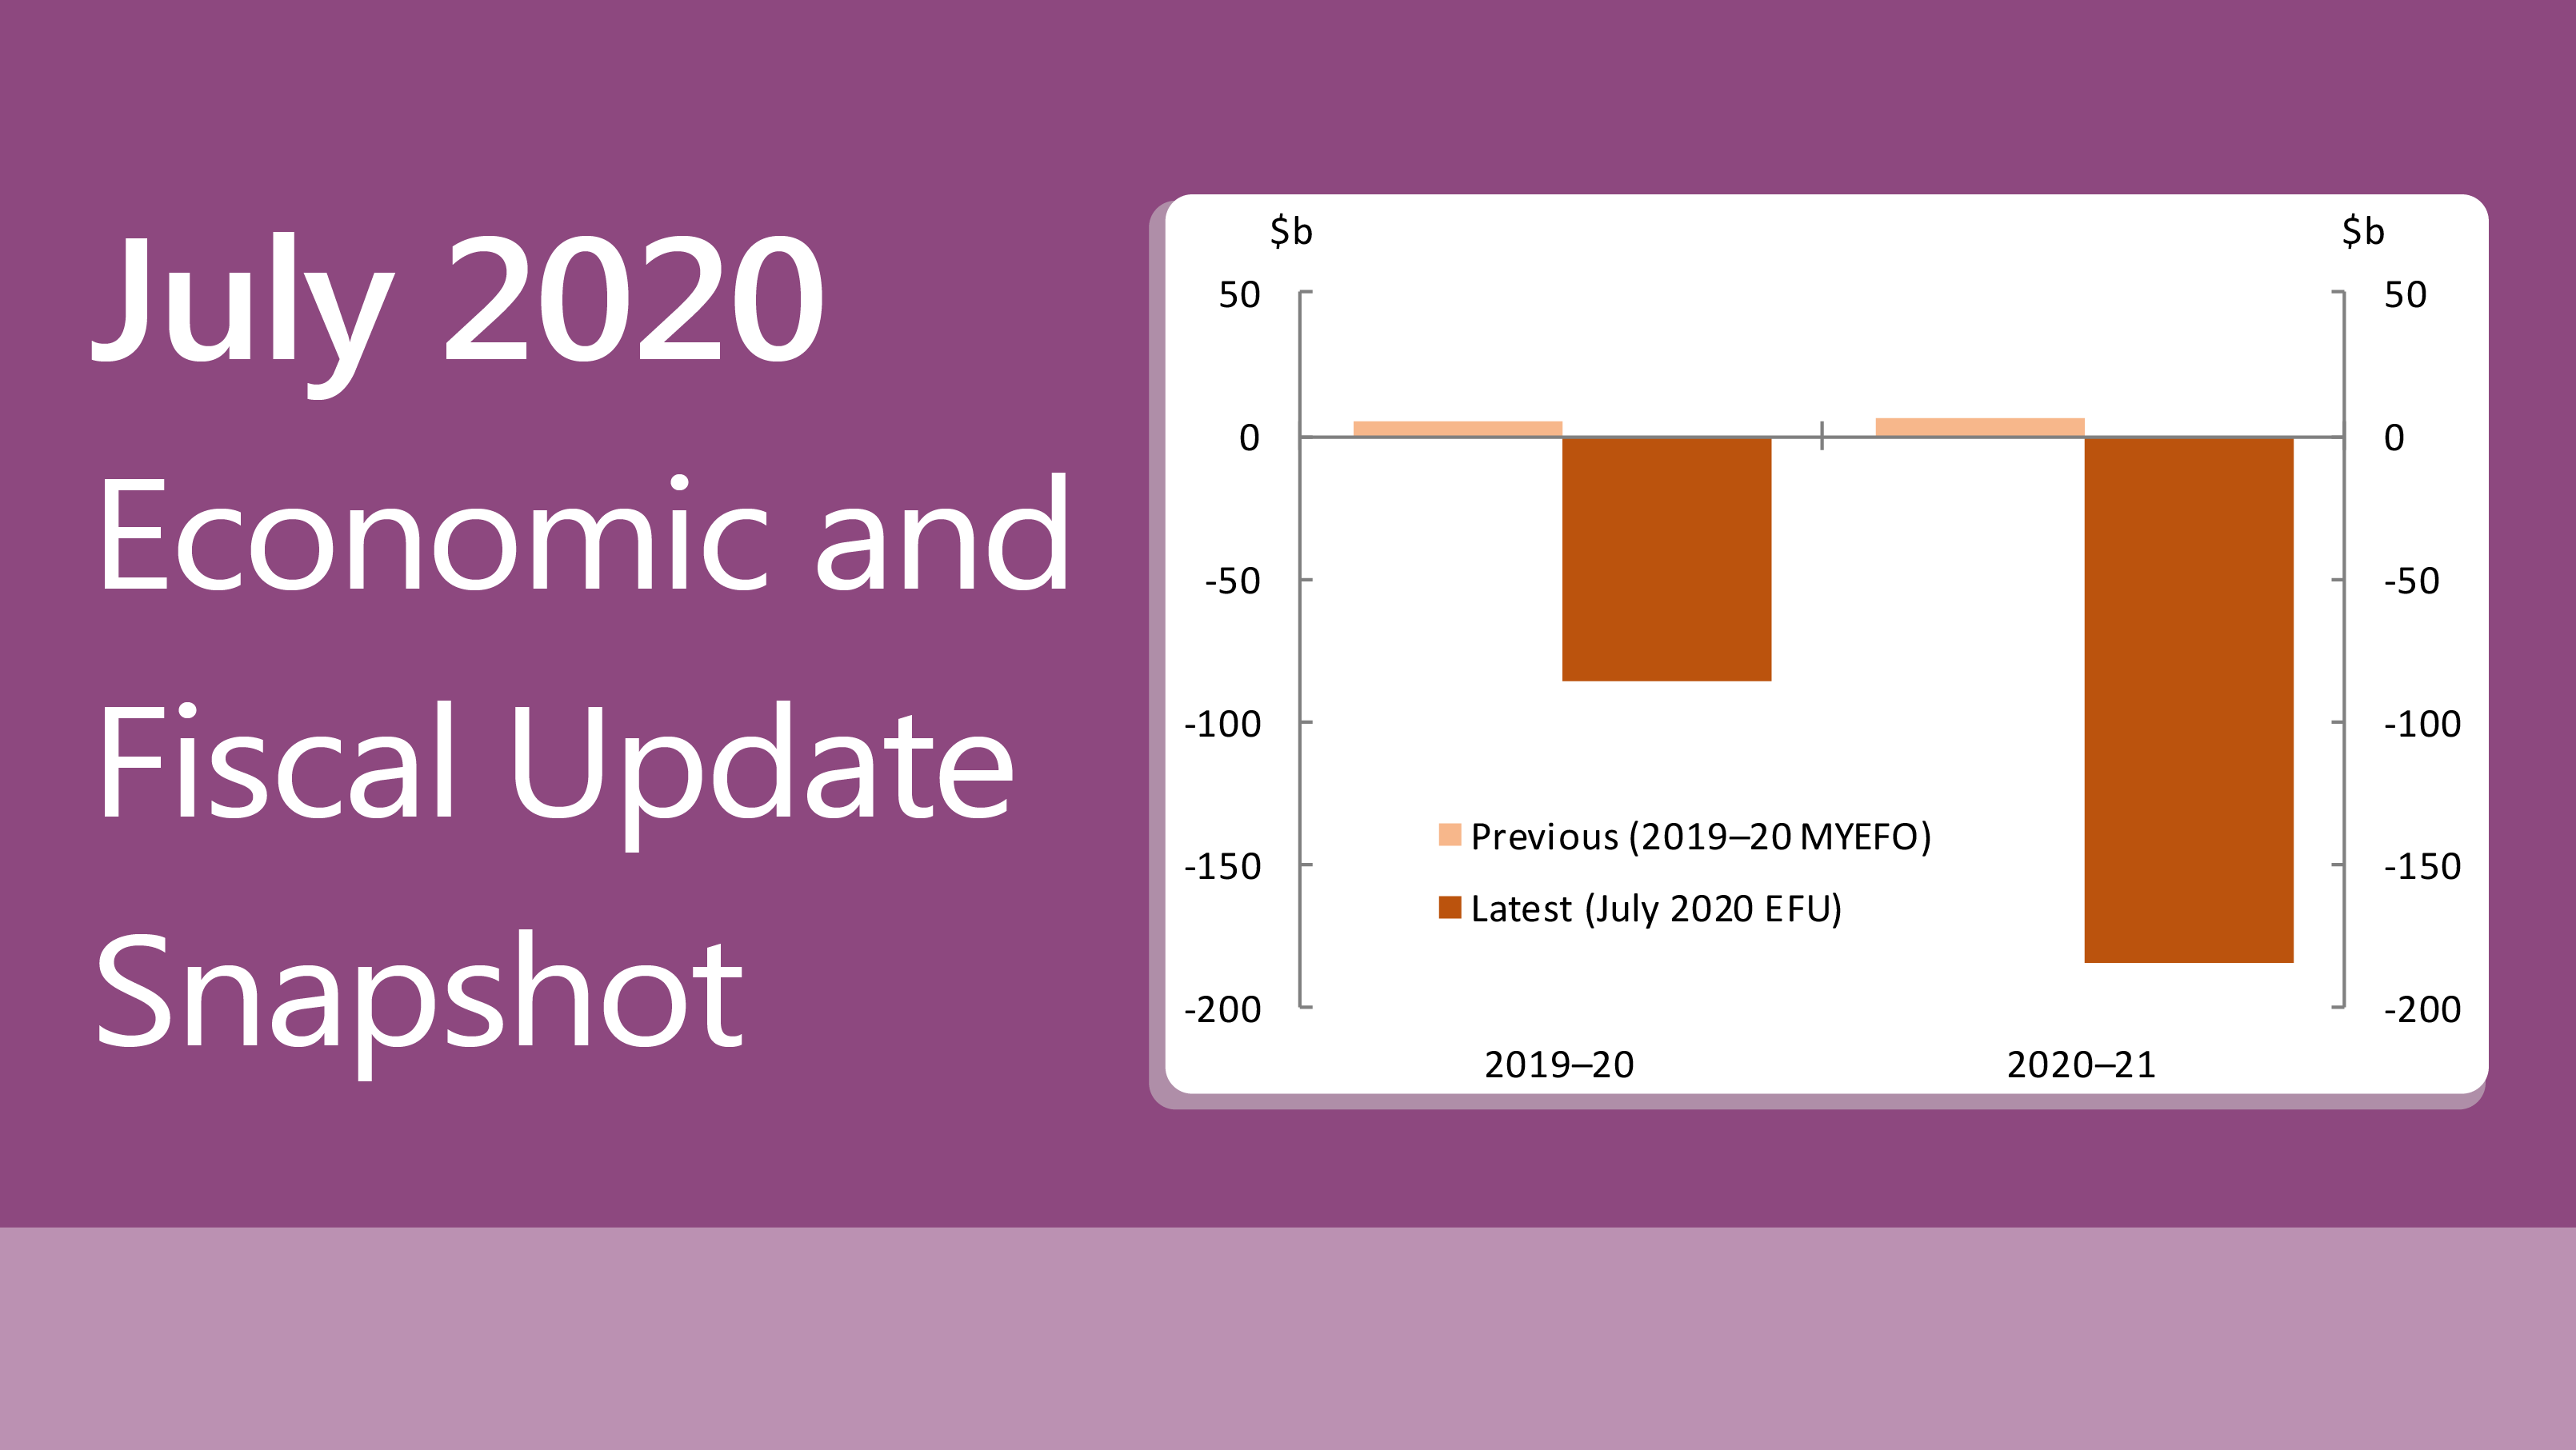 July 2020 Economic and Fiscal Update Snapshot